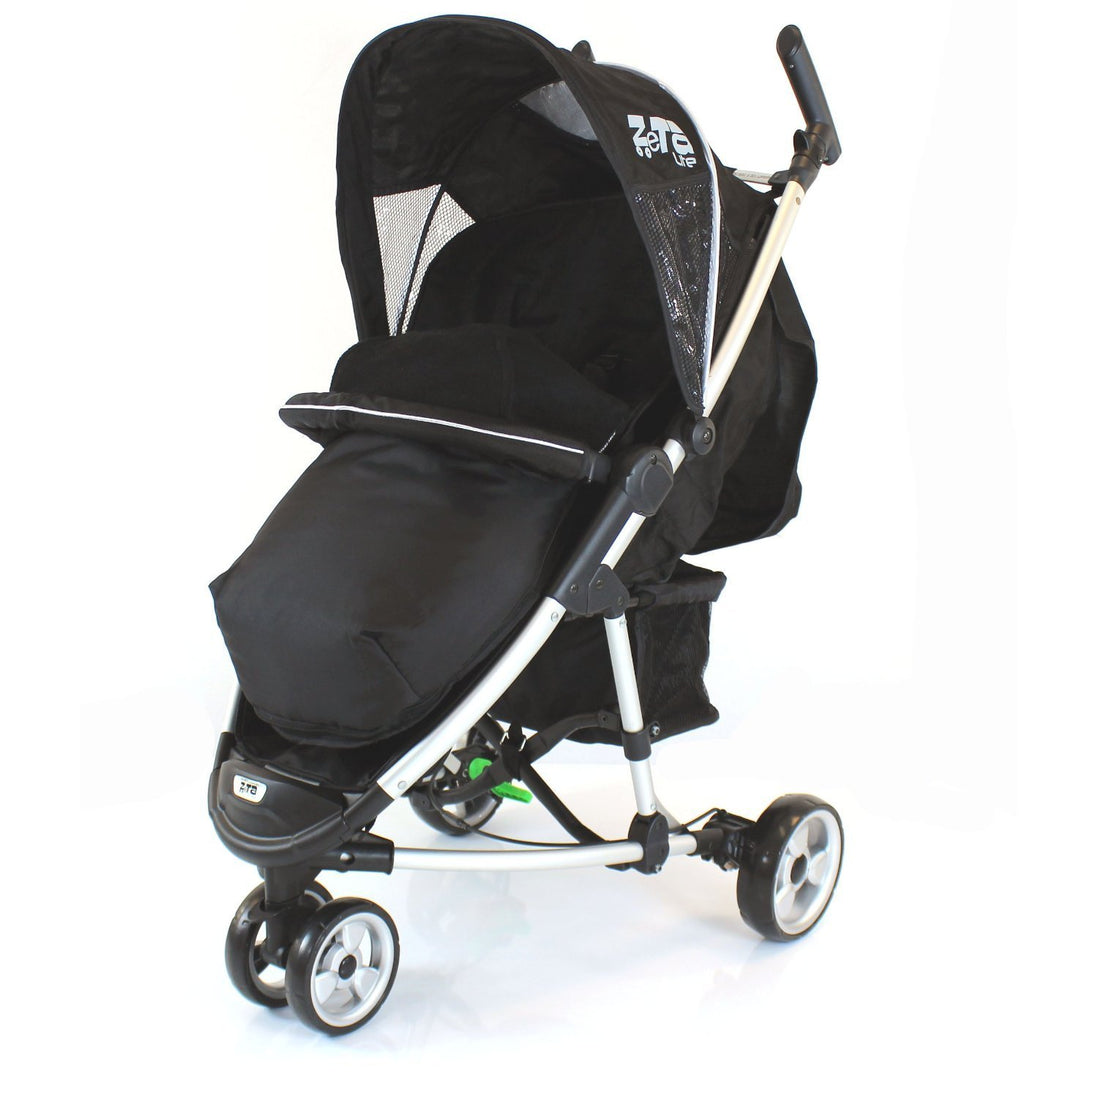 Black Footmuff With Puches Fits Baby Jogger City Mini Micro Stroller Pushchair